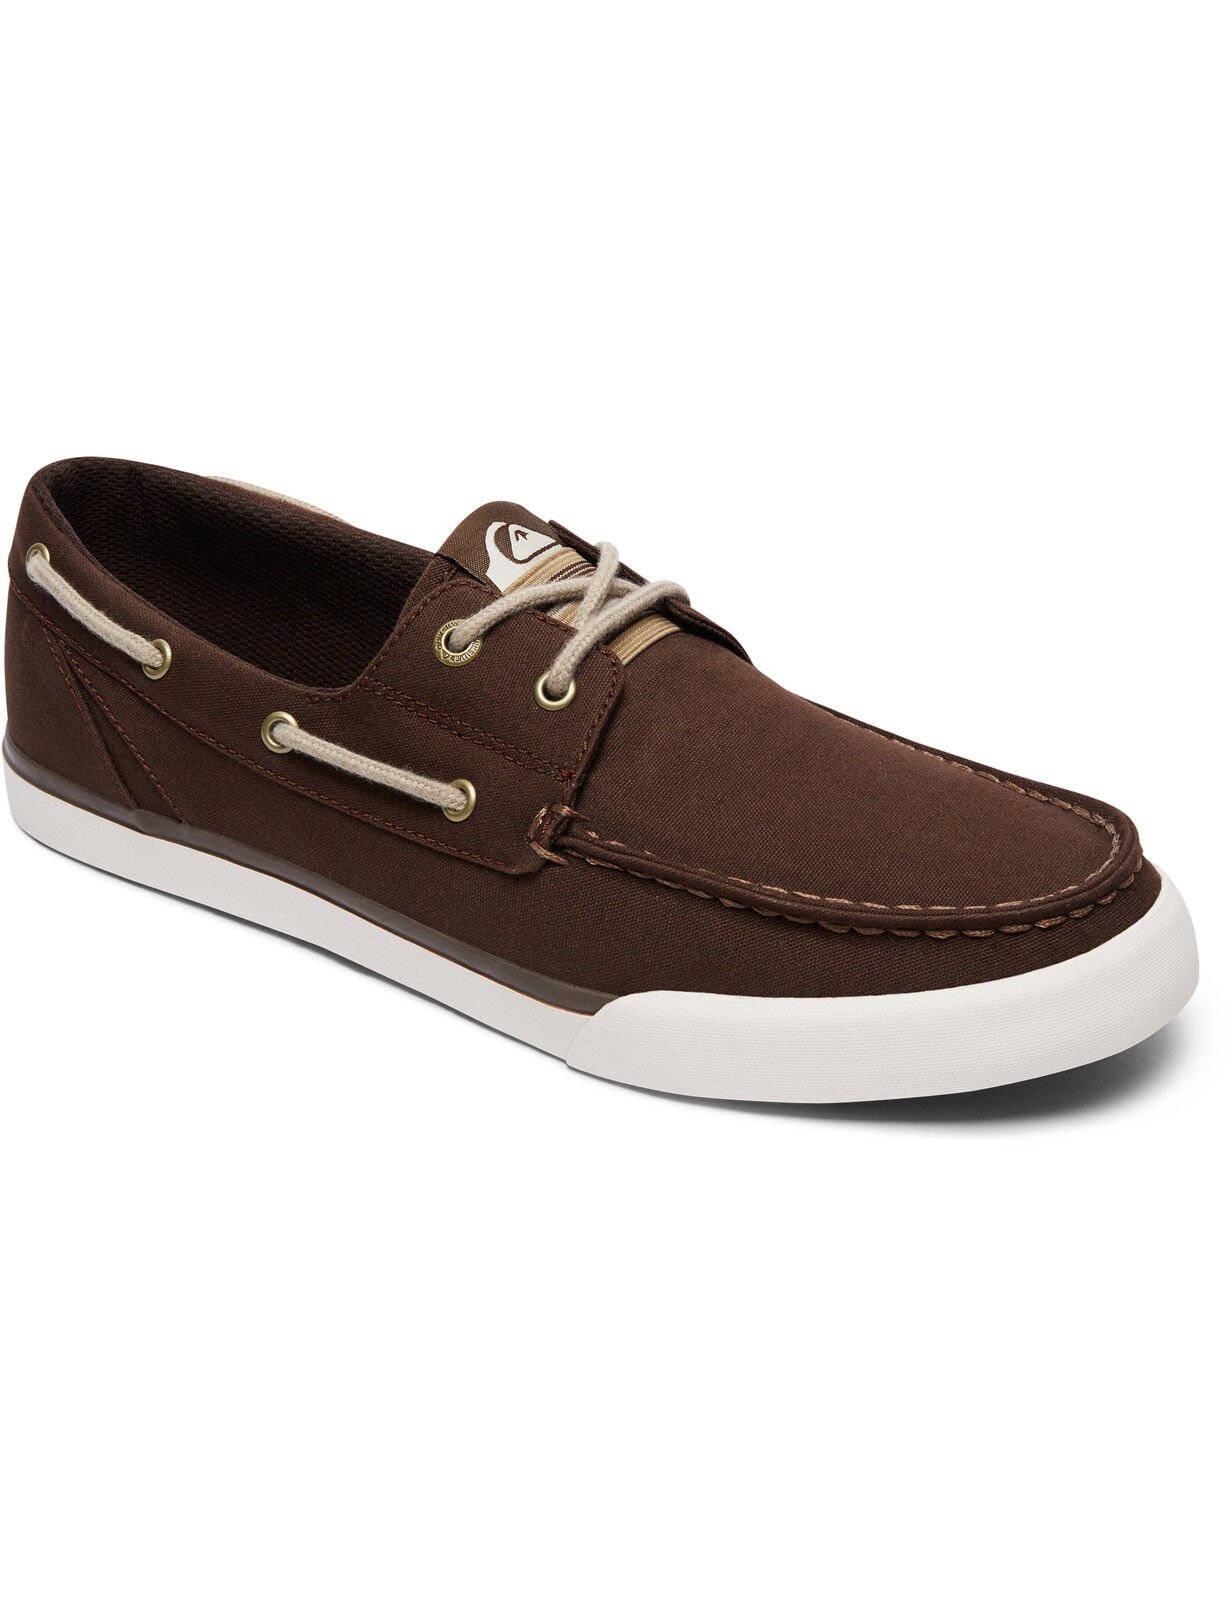 Quiksilver Spar Trainers Trainers Trainers in Braun 6d7c9c